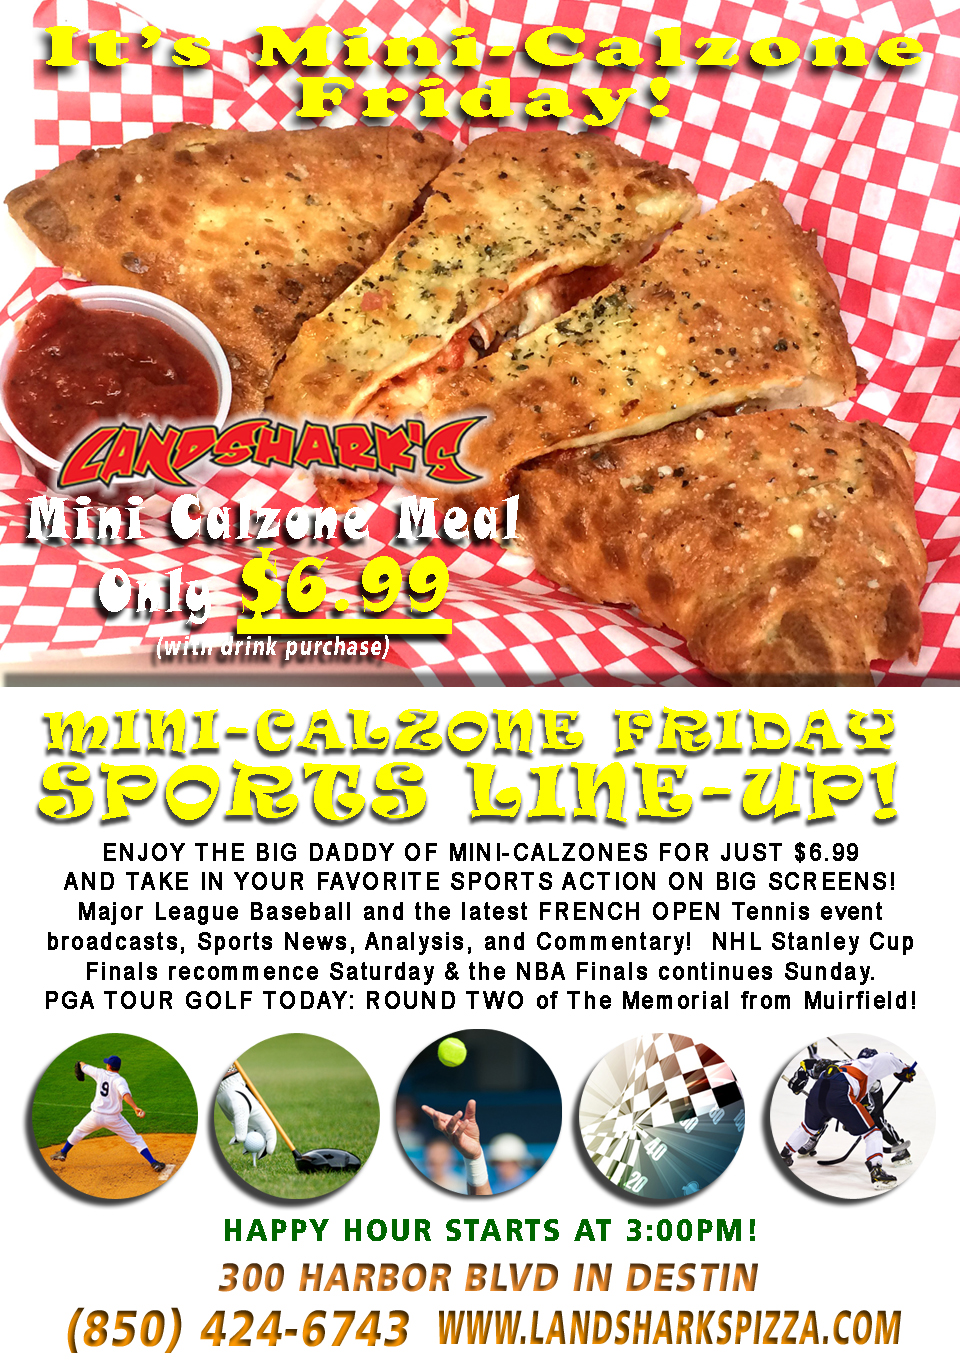 Best Calzones in Destin FL Award Winning Landsharks Calzone